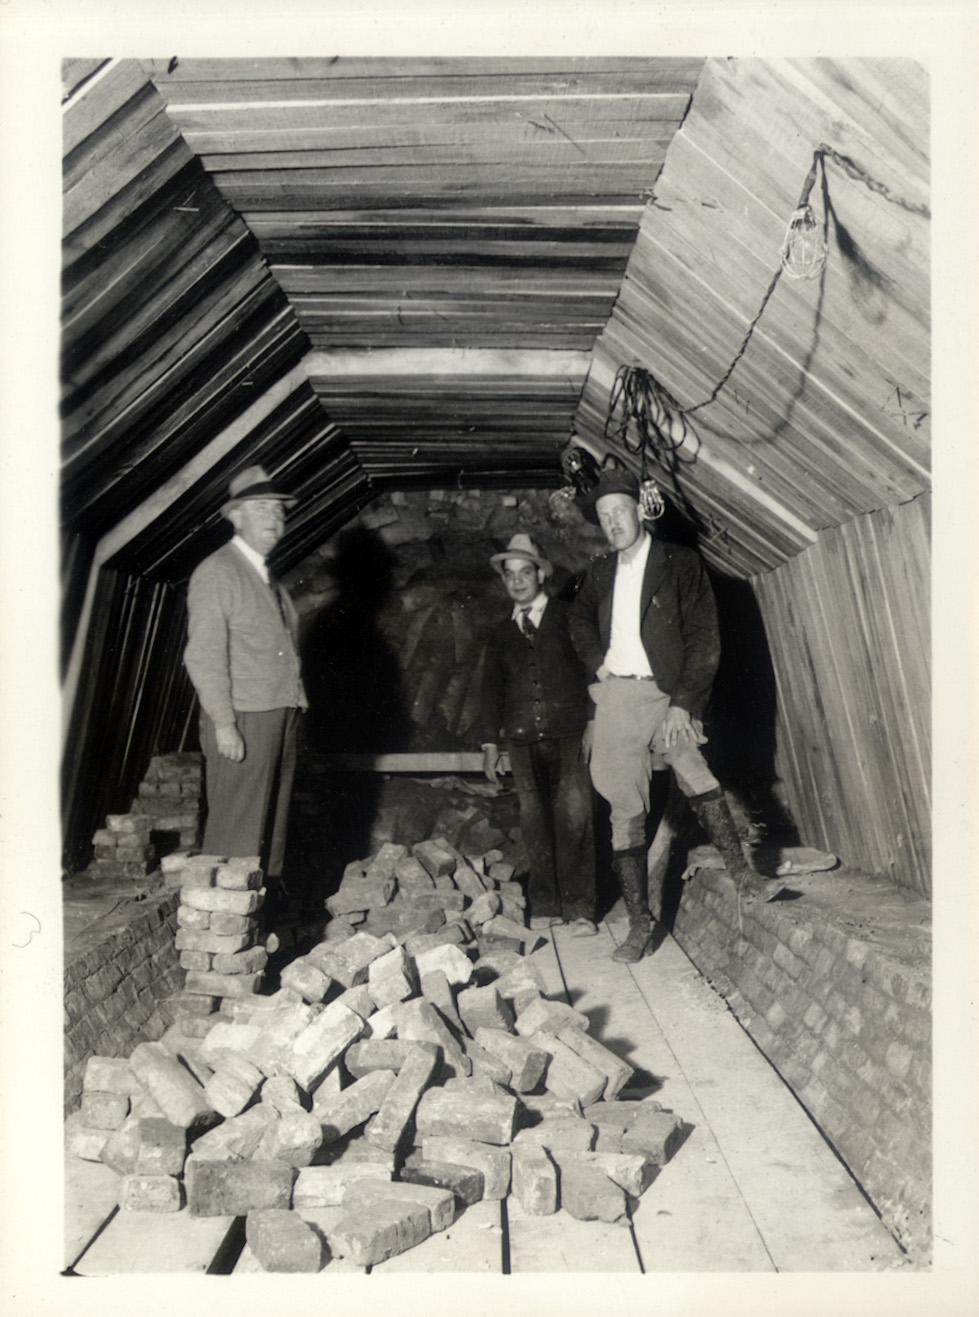 111th Street, sewer tunnel, April 1938